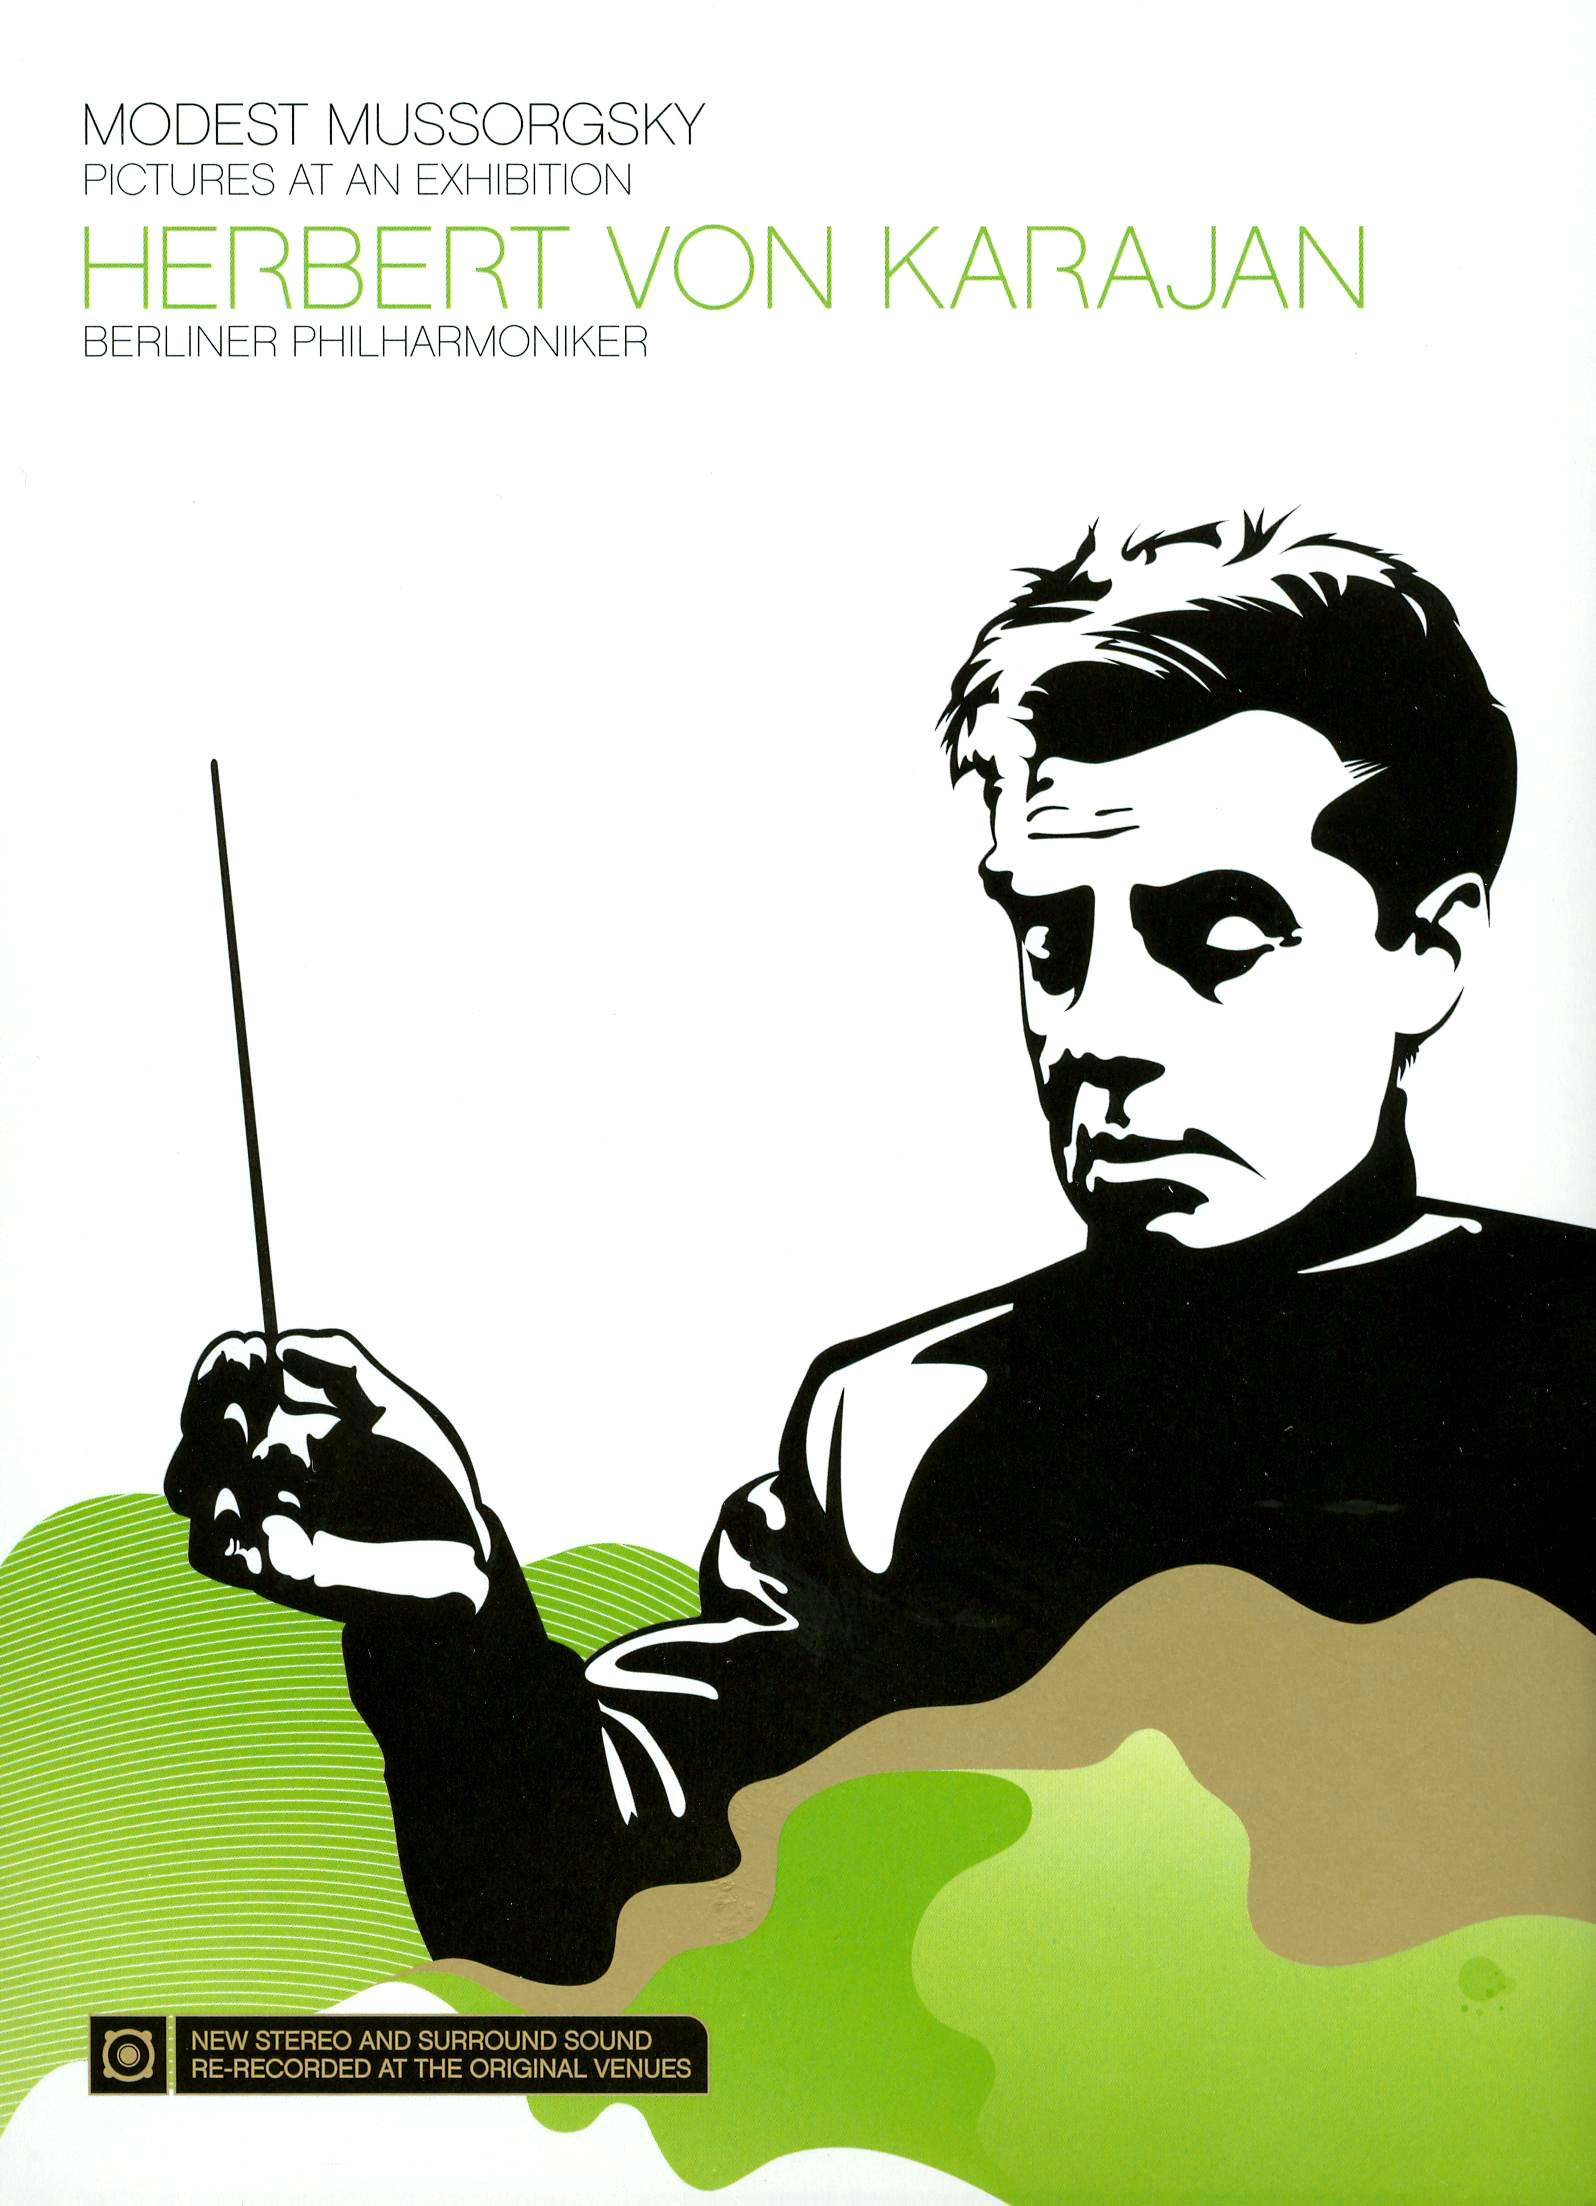 Herbert Von Karajan - His Legacy for Home Video: Modest Mussorgsky - Pictures at an Exhibition